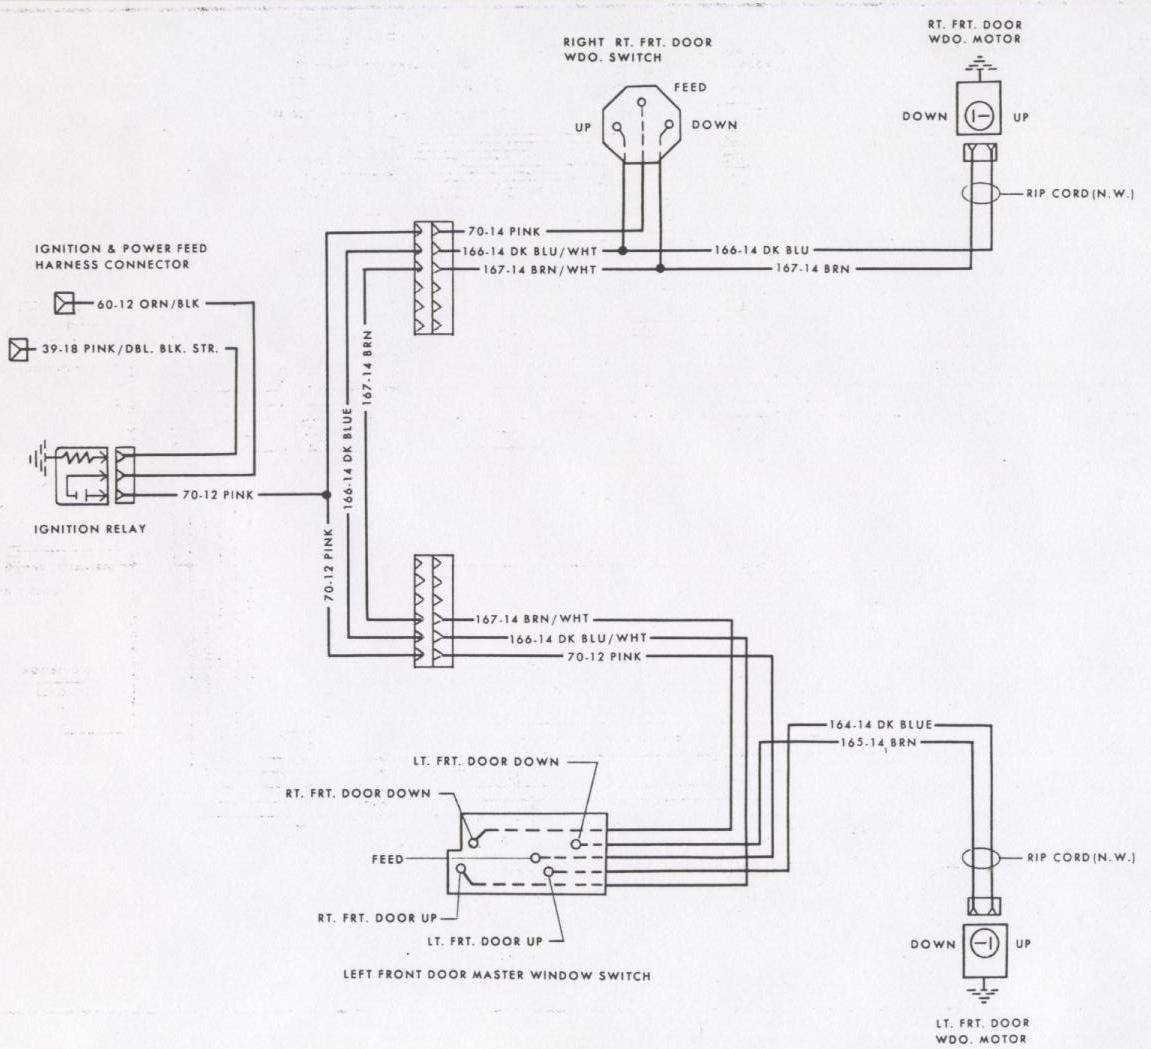 Camaro Wiring Diagrams Electrical Information Troubleshooting Ls1 Coil Wire Diagram Colors Power Locks 1978